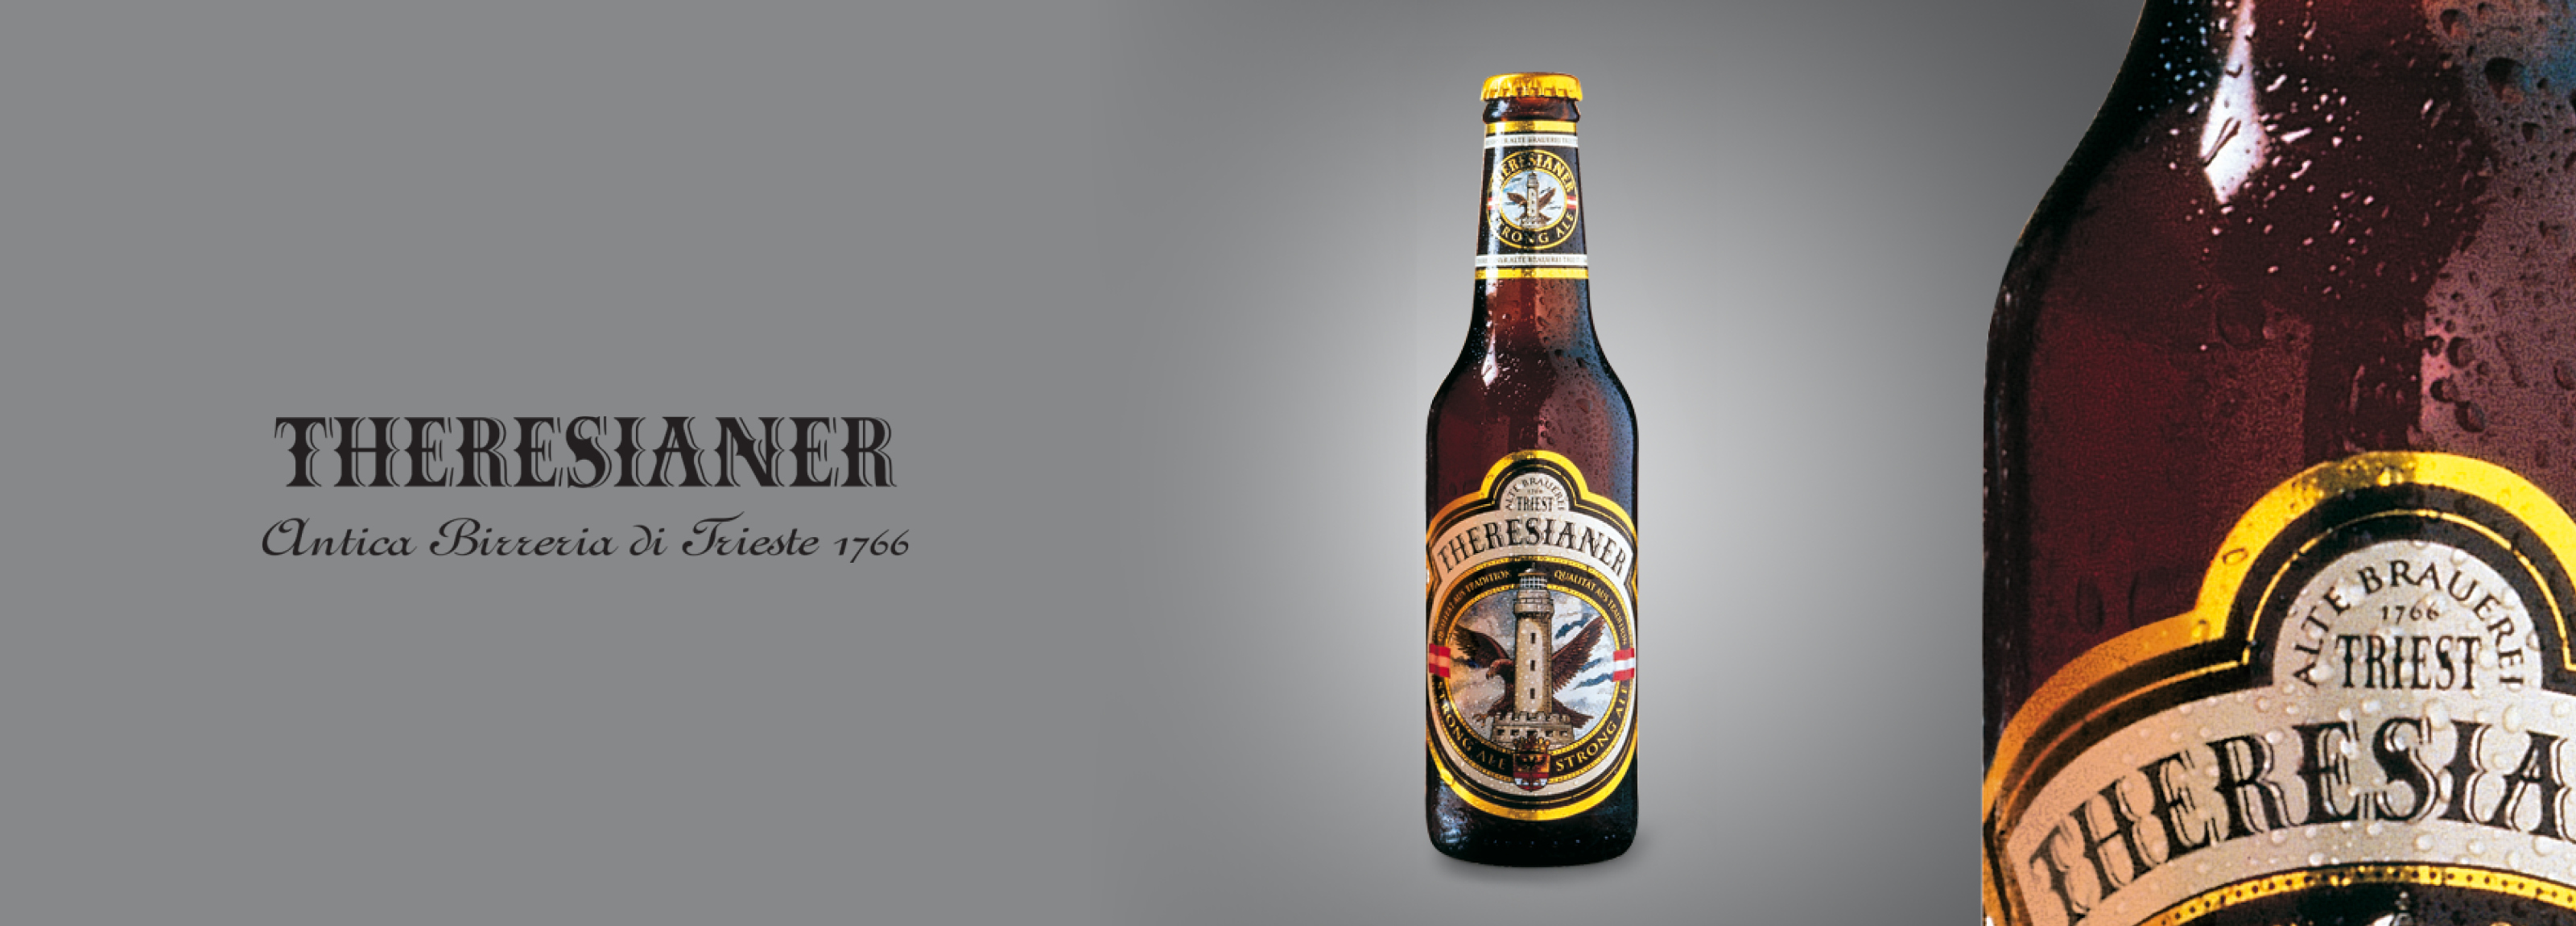 Packaging design project signed by Hangar Design Group for the historical Italian beer Theresianer.